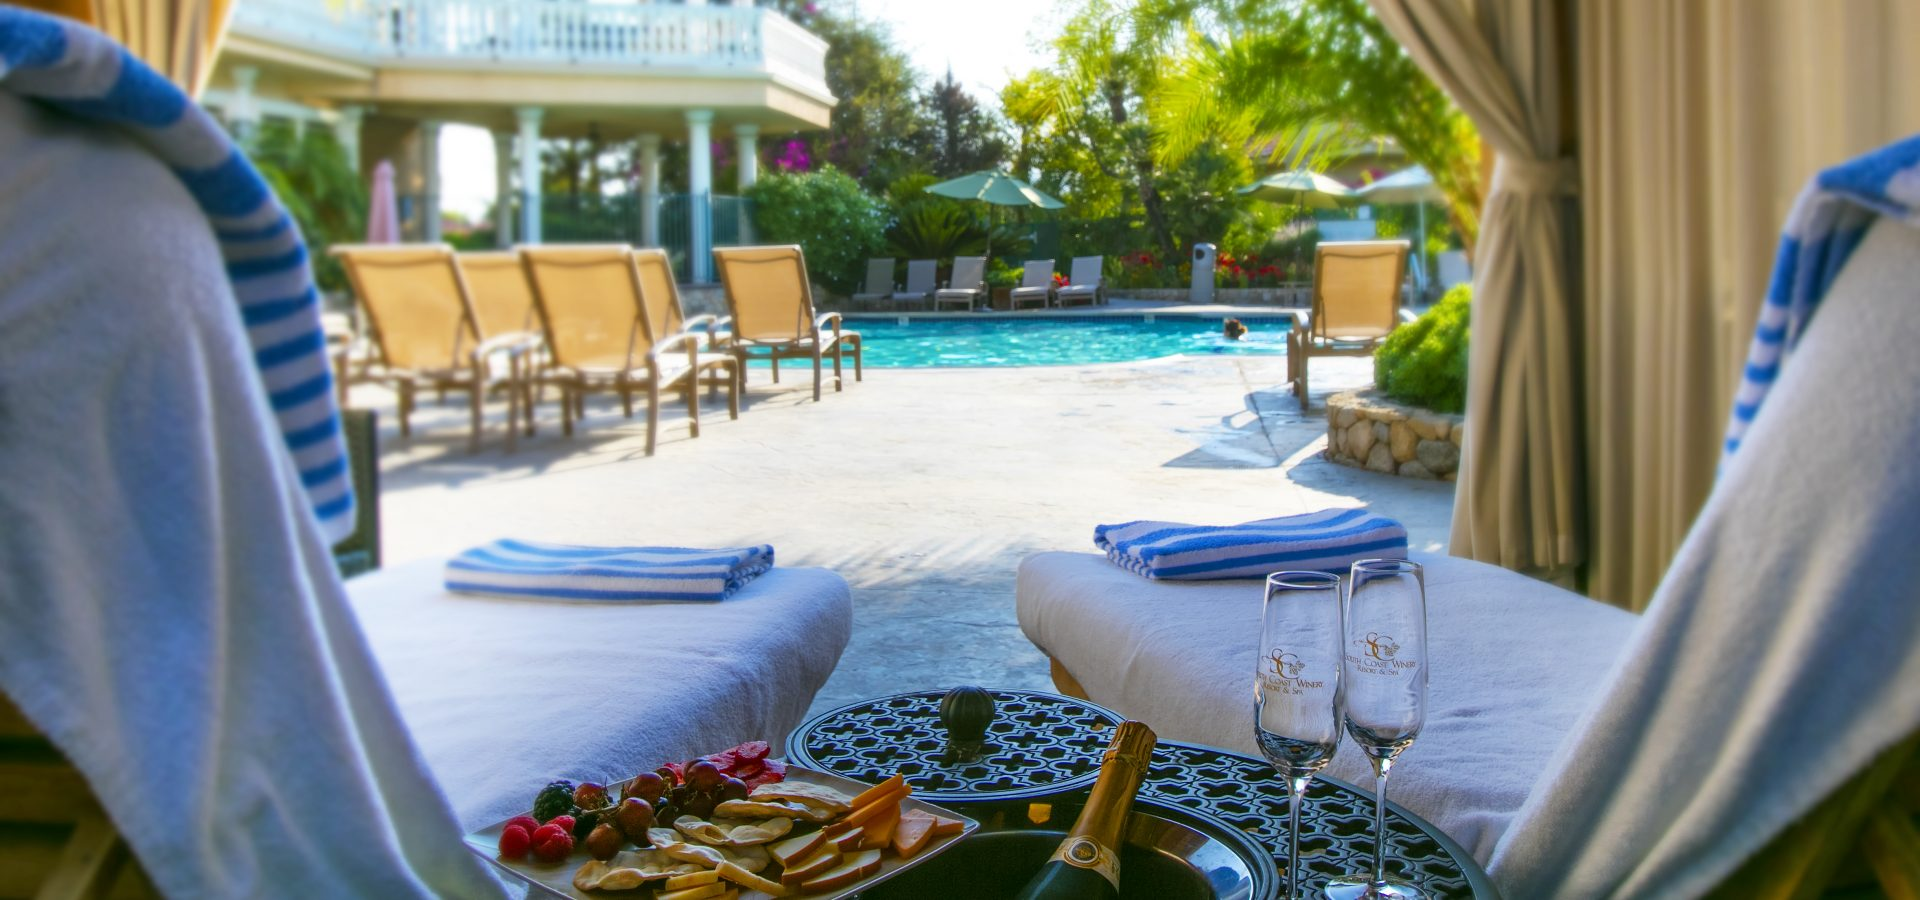 relax with wine and snacks at our outdoor pool area featuring cabanas in Temecula